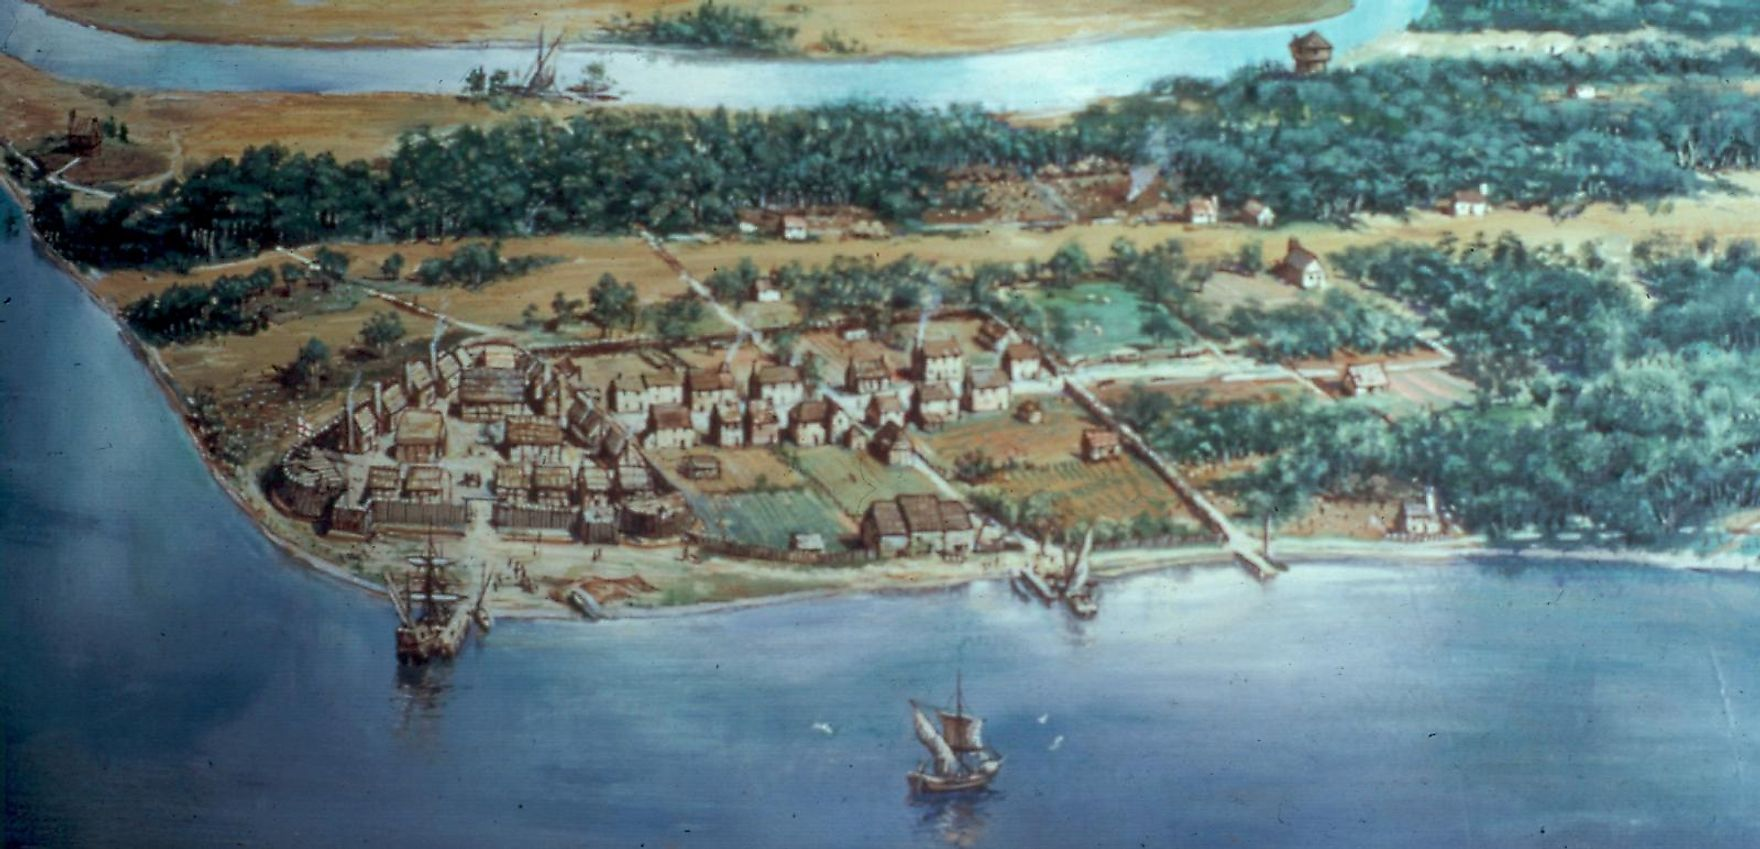 Artist's conception of aerial view of Jamestown, one of the earliest English colonies in the Americans, in 1614. Image credit: Sidney King/Public domain